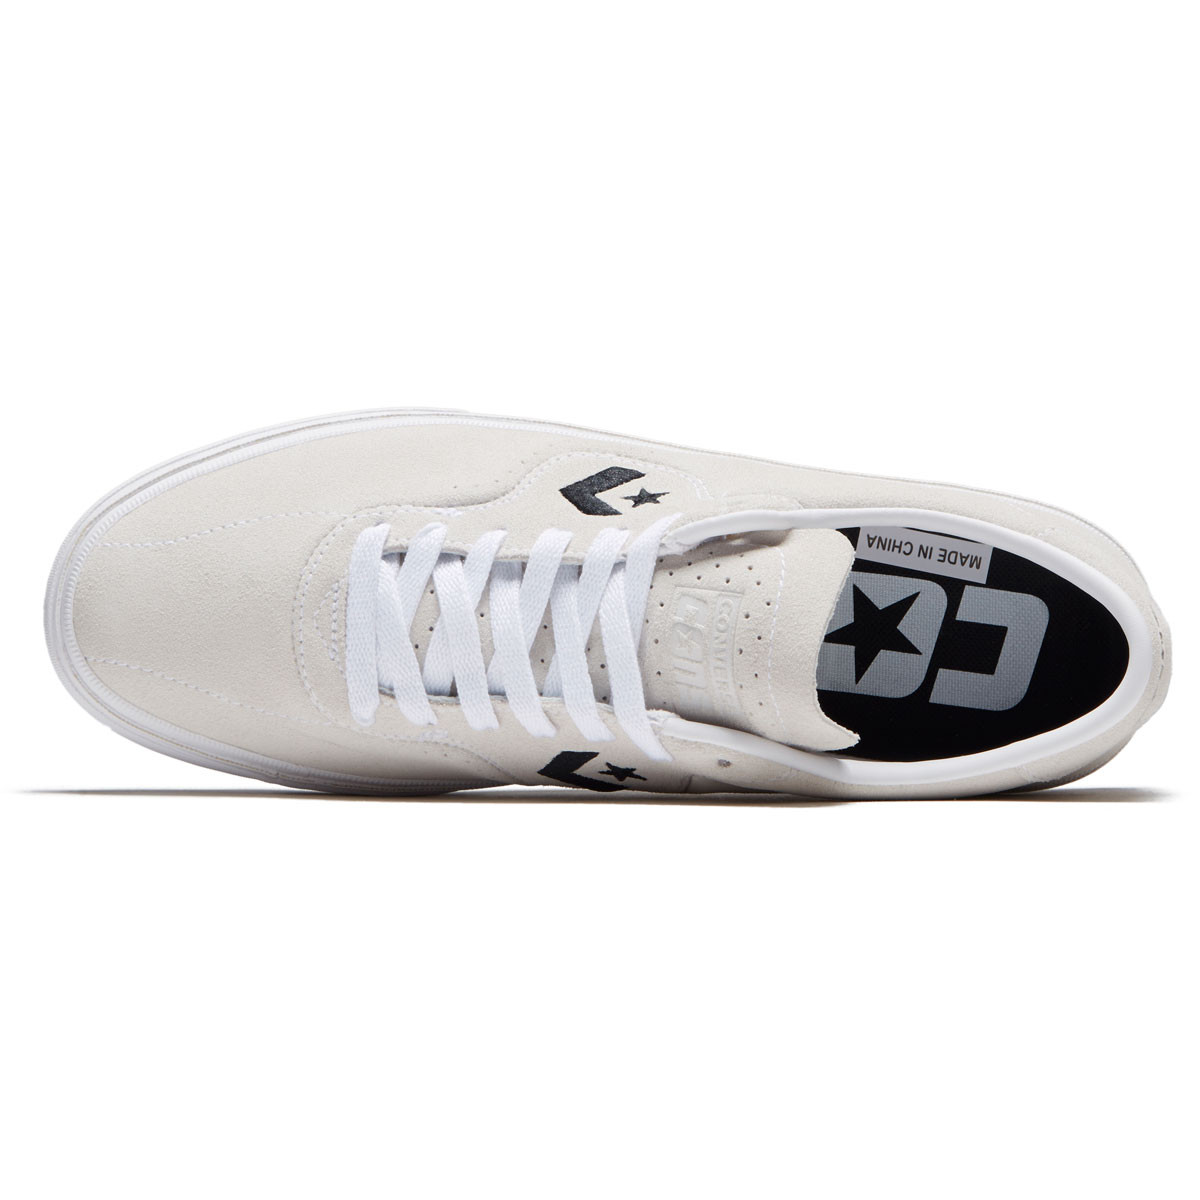 4d3c8562d87e Converse Louie Lopez Pro Shoes - White White Black - 10.0